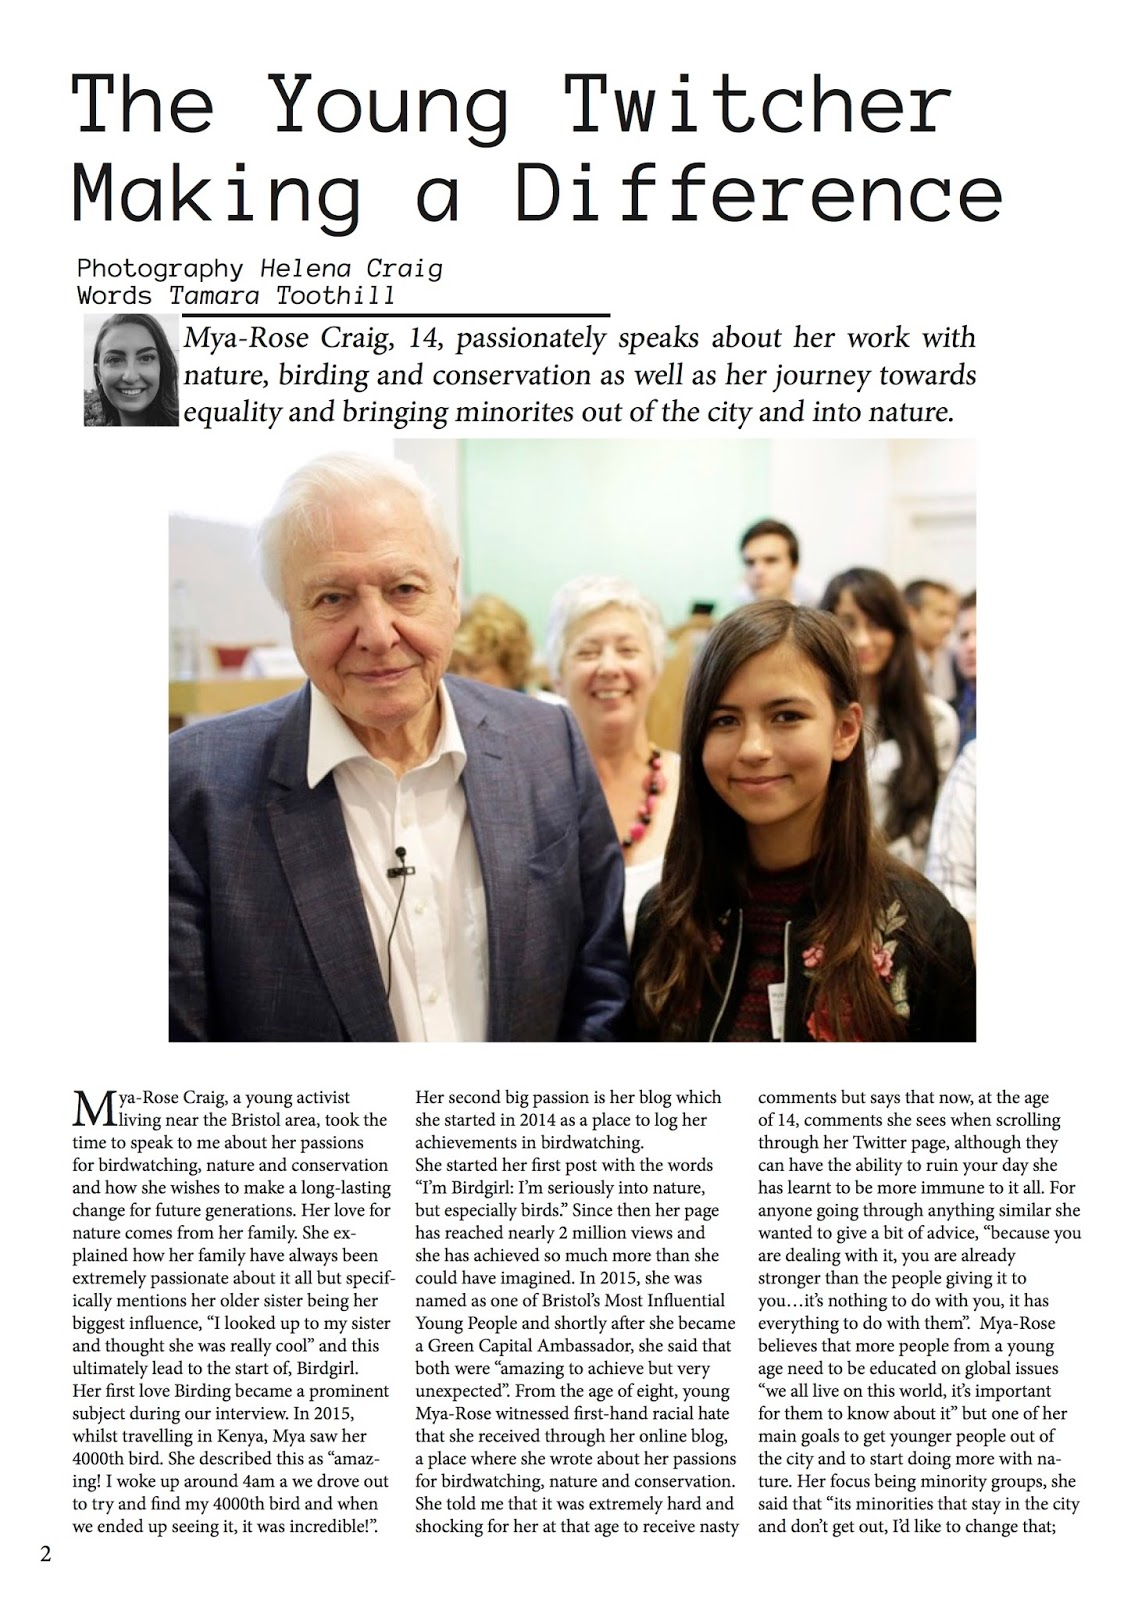 Interview with University of West of England first year journalism student Tamara Toothill